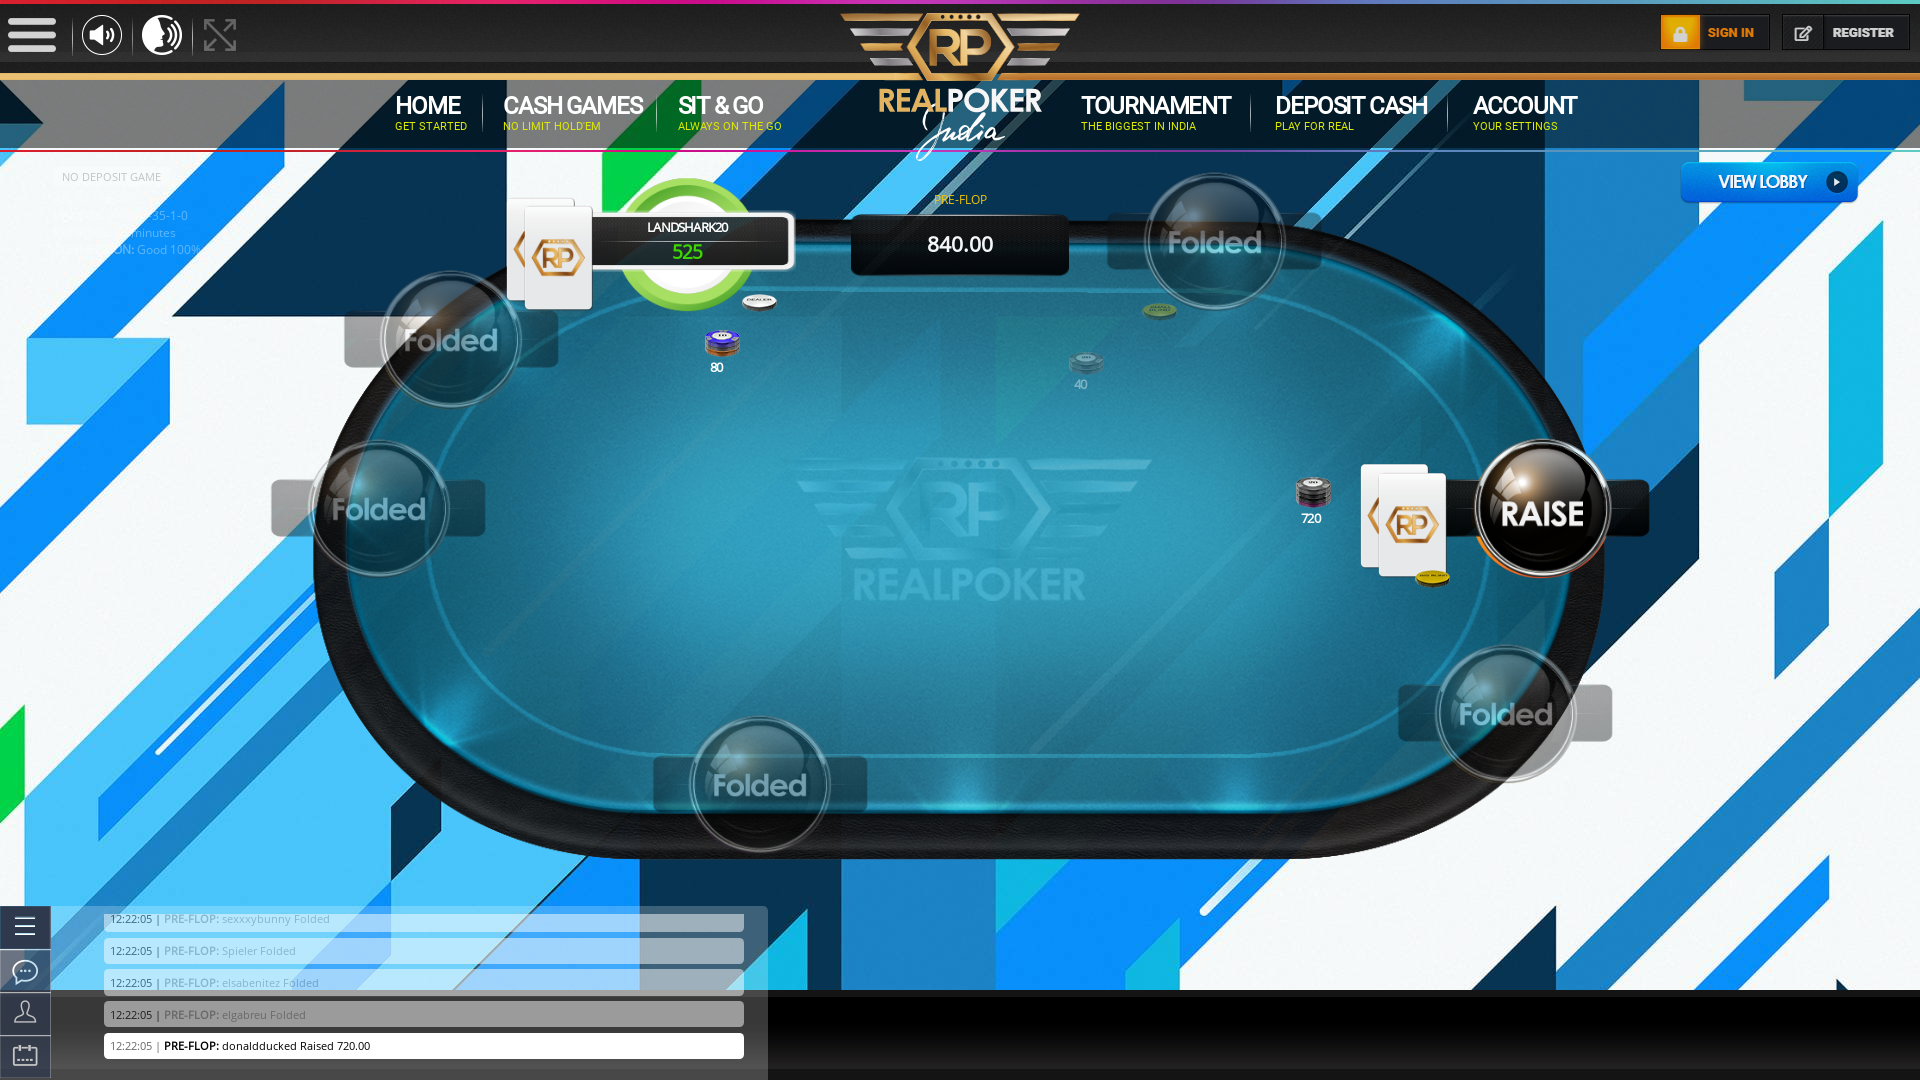 Indian online poker on a 10 player table in the 30th minute match up